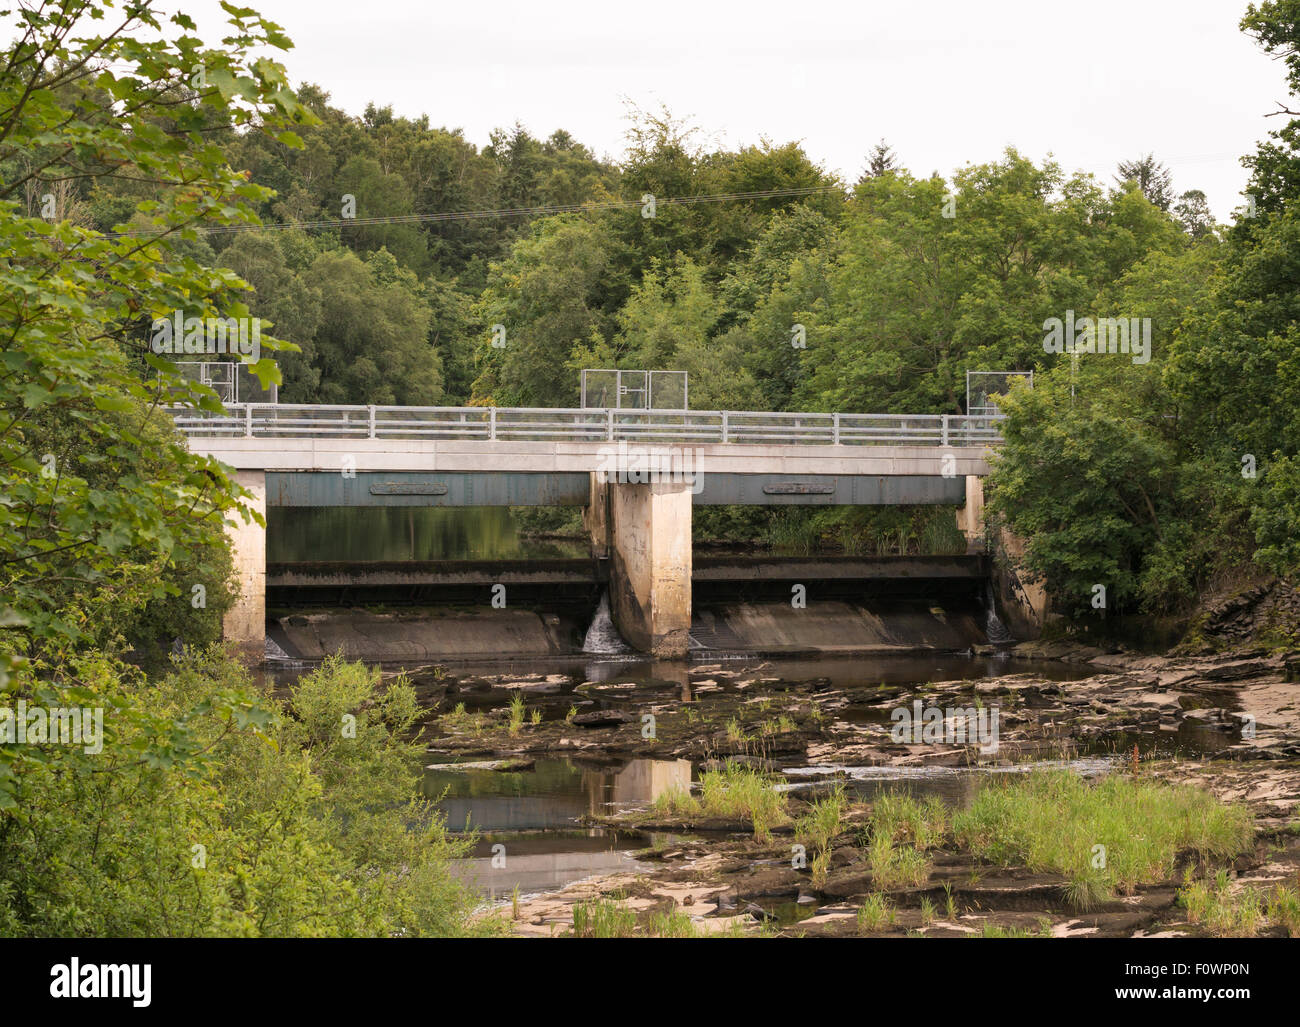 The sluice gates at Bonnington Linn, above Bonnington Hydro power station New Lanark, South Lanarkshire, Scotland, - Stock Image